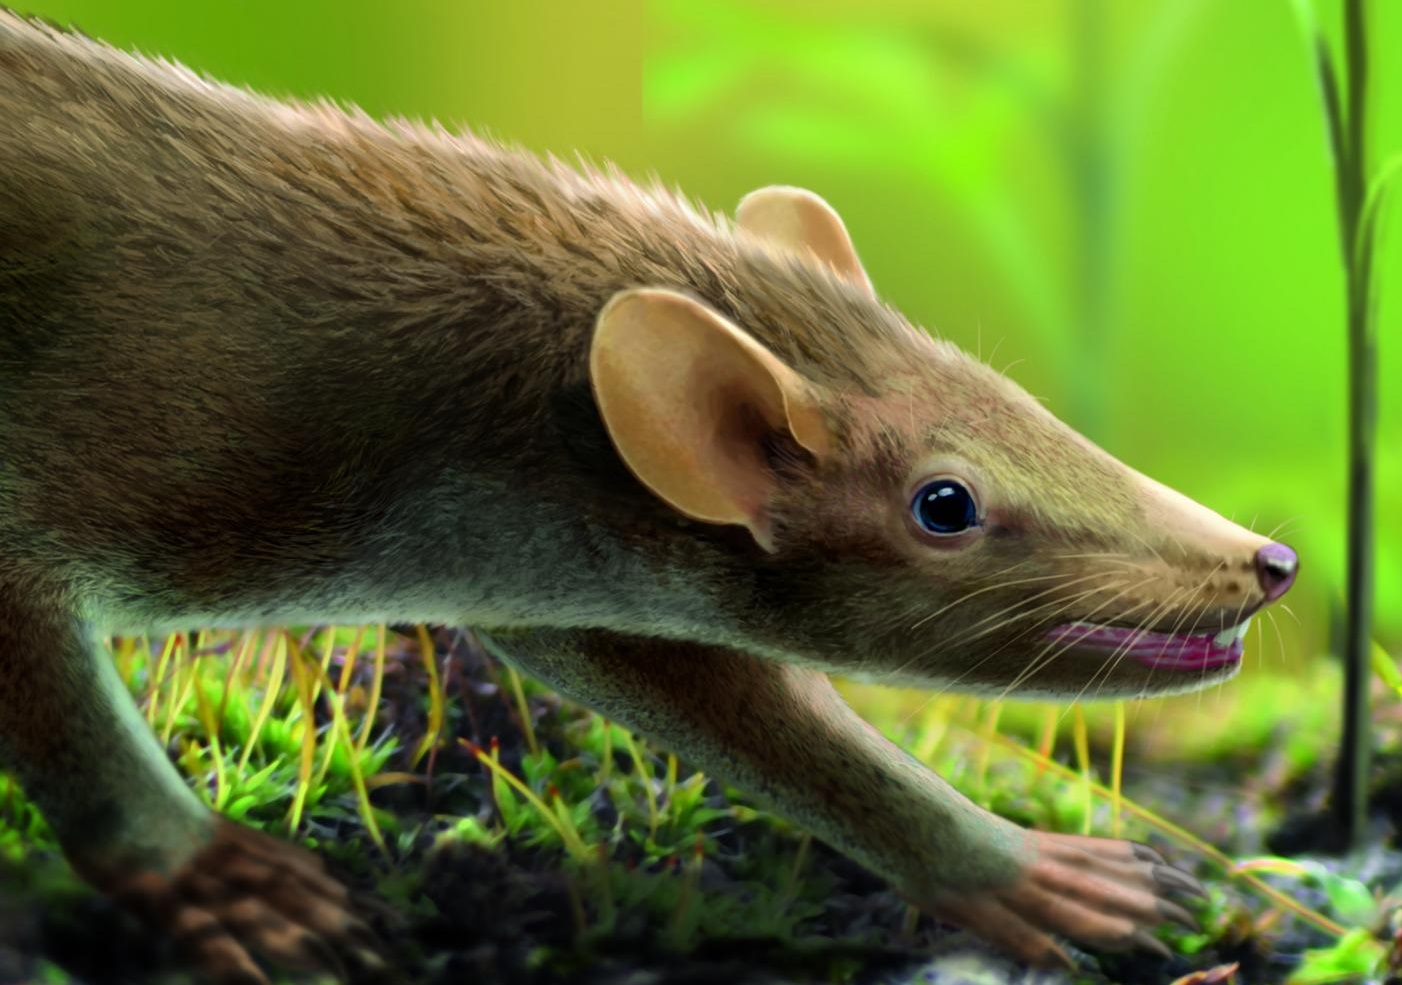 Living reconstruction of the prehistoric mammal Spinolestes in the Cretaceous-period Las Hoyas wetland. Drawing: Oscar Sanisidro. With permission of Nature Publishing Group